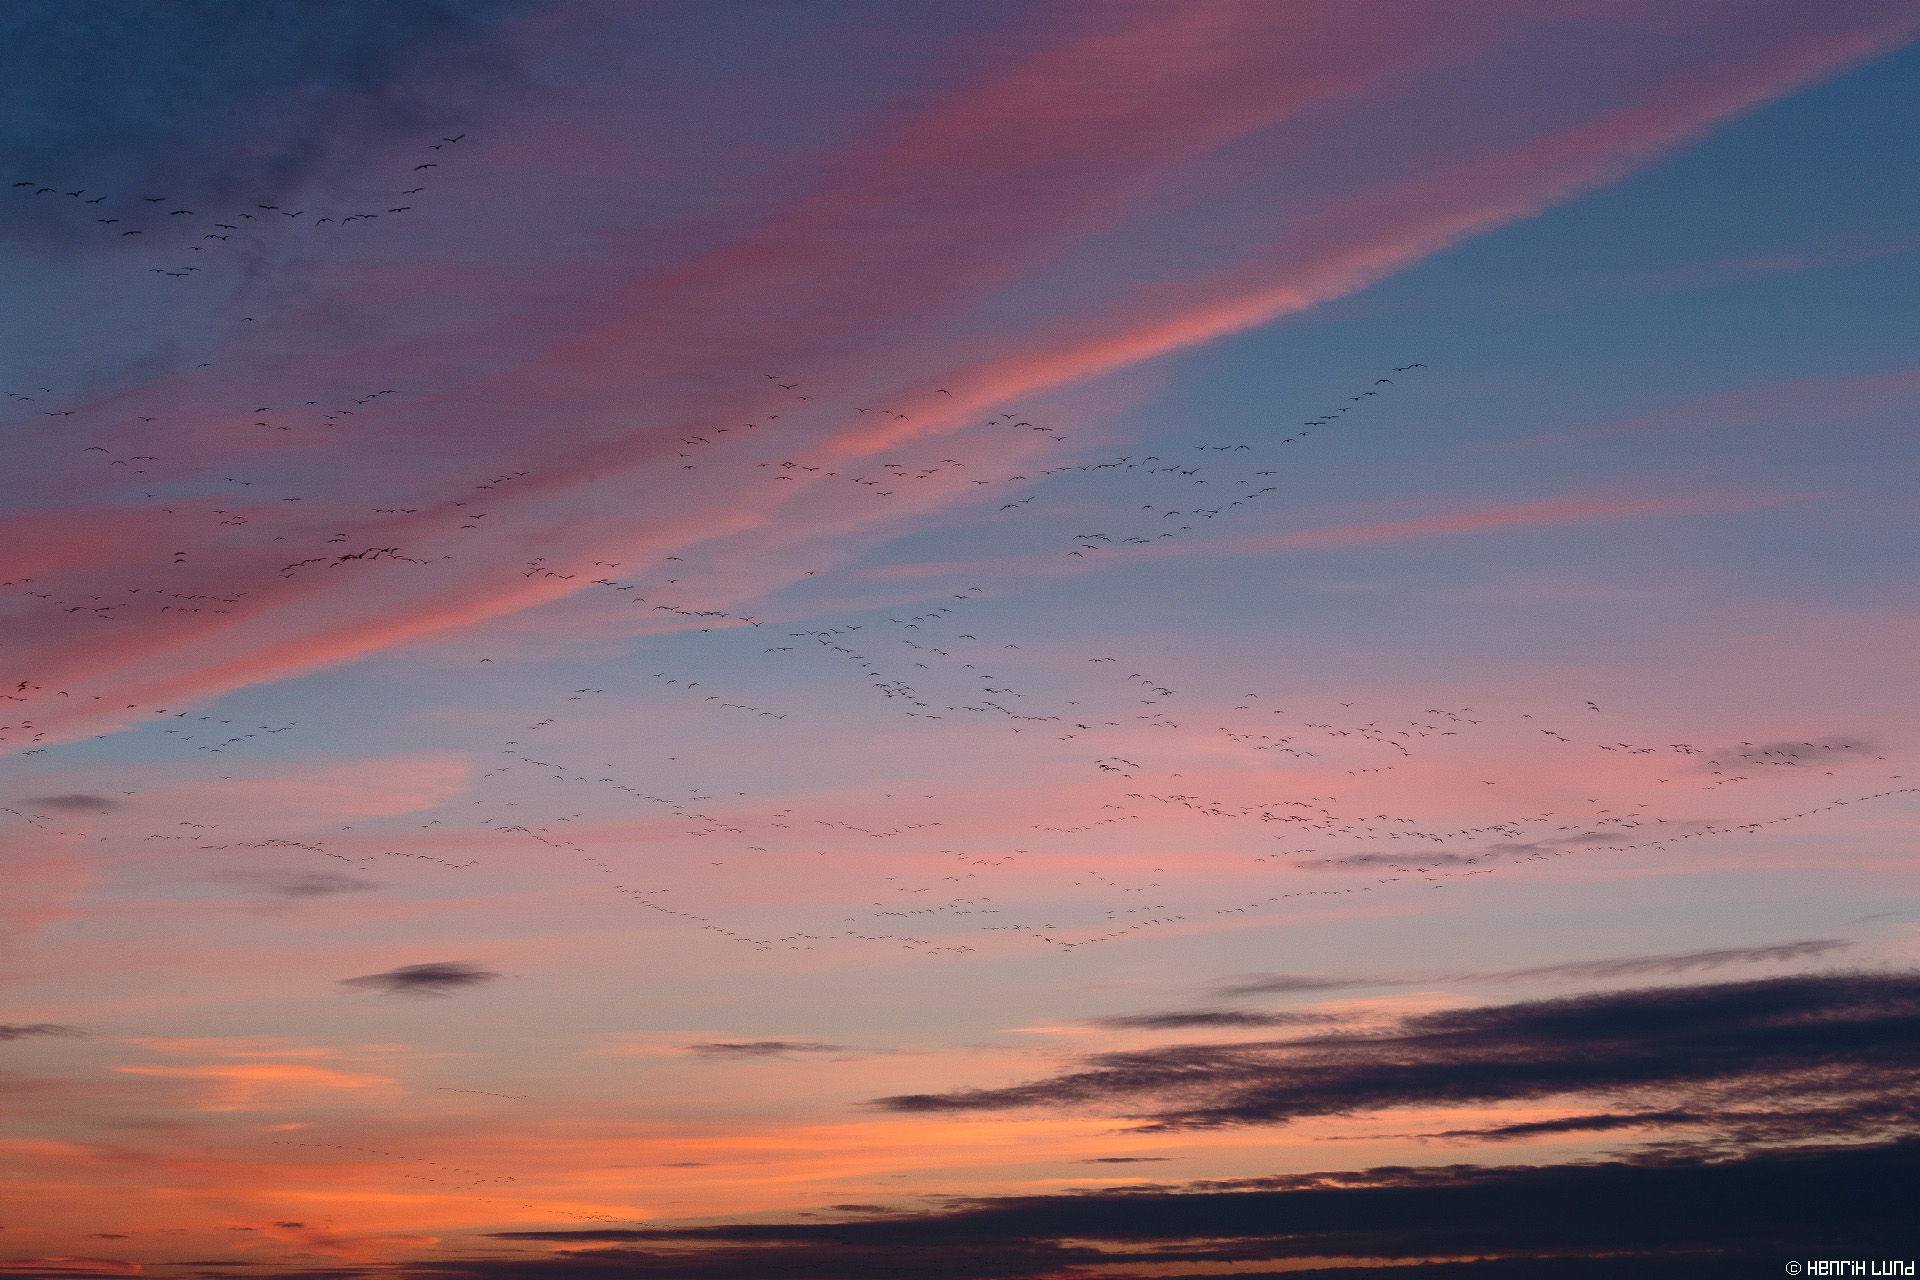 Thousands of geese flying over to land on the lake for the night. Lappträsk, Finland, October 2014.